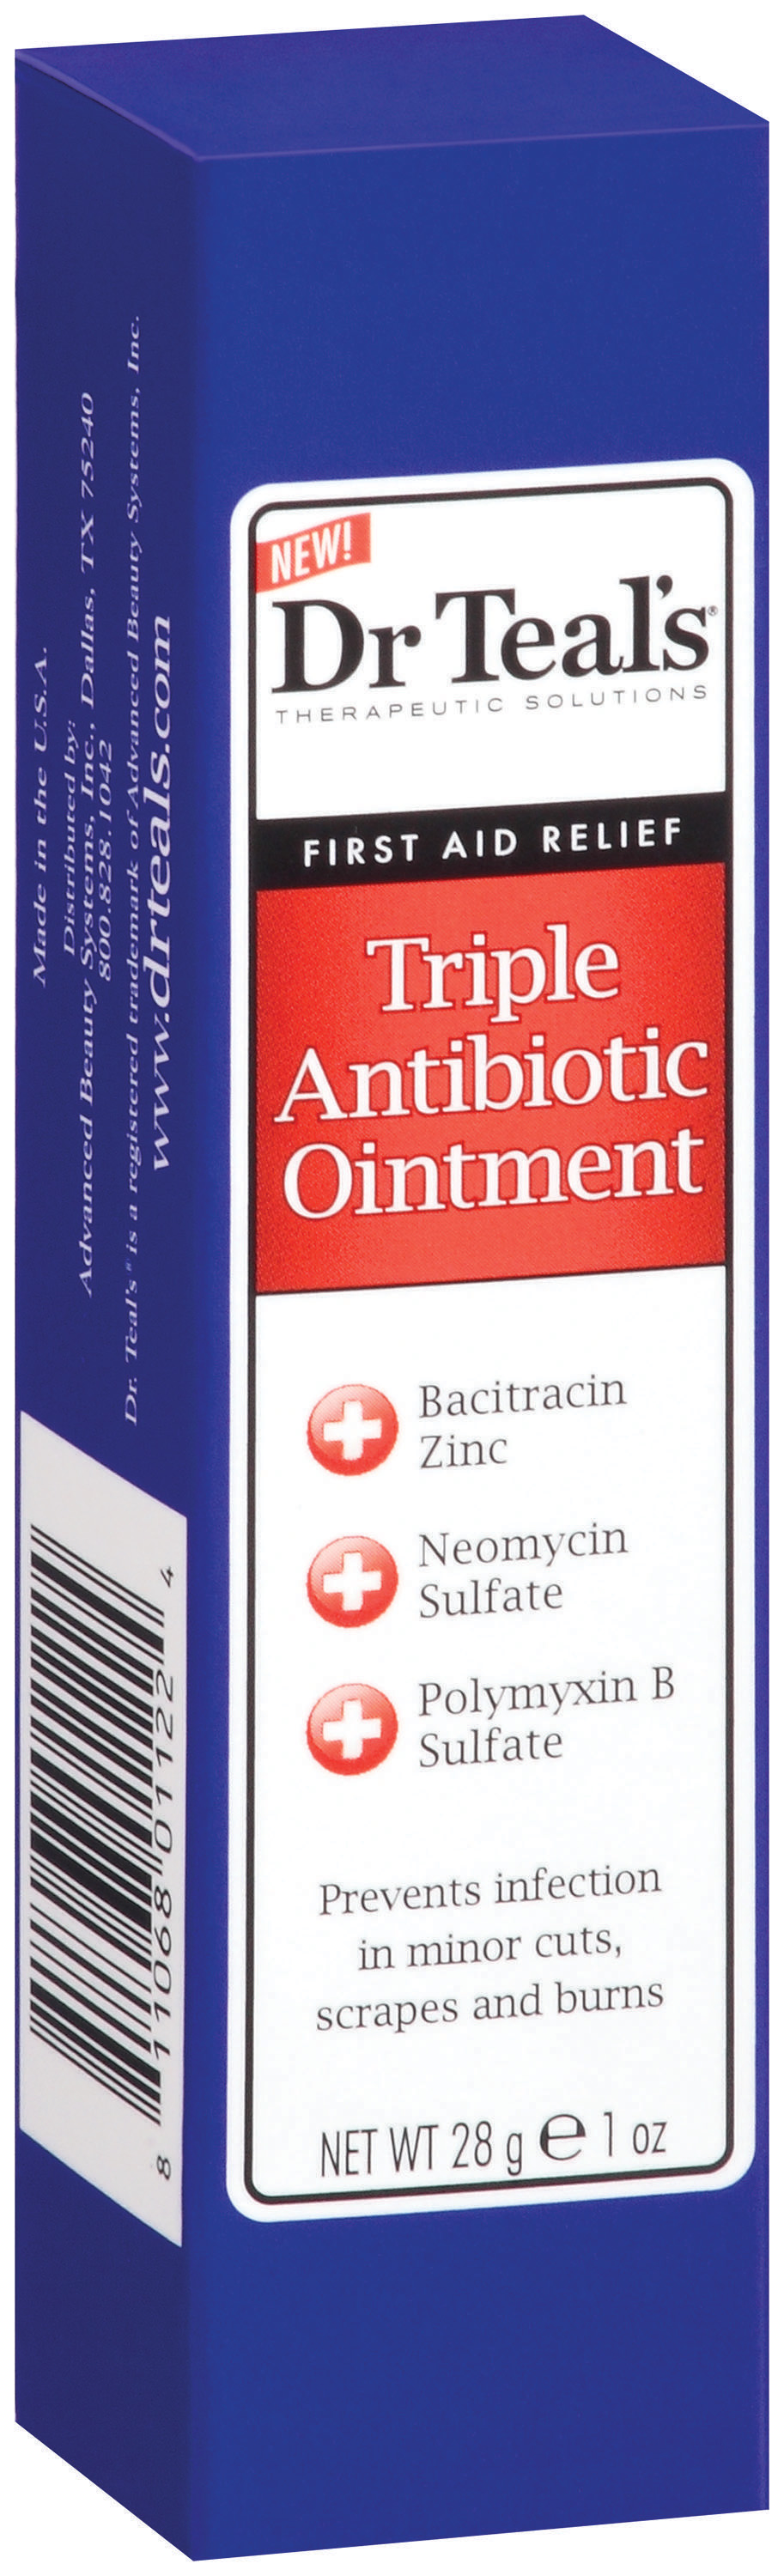 Dr. Teal's® First Aid Relief Triple Antibiotic Ointment 1 oz. Box